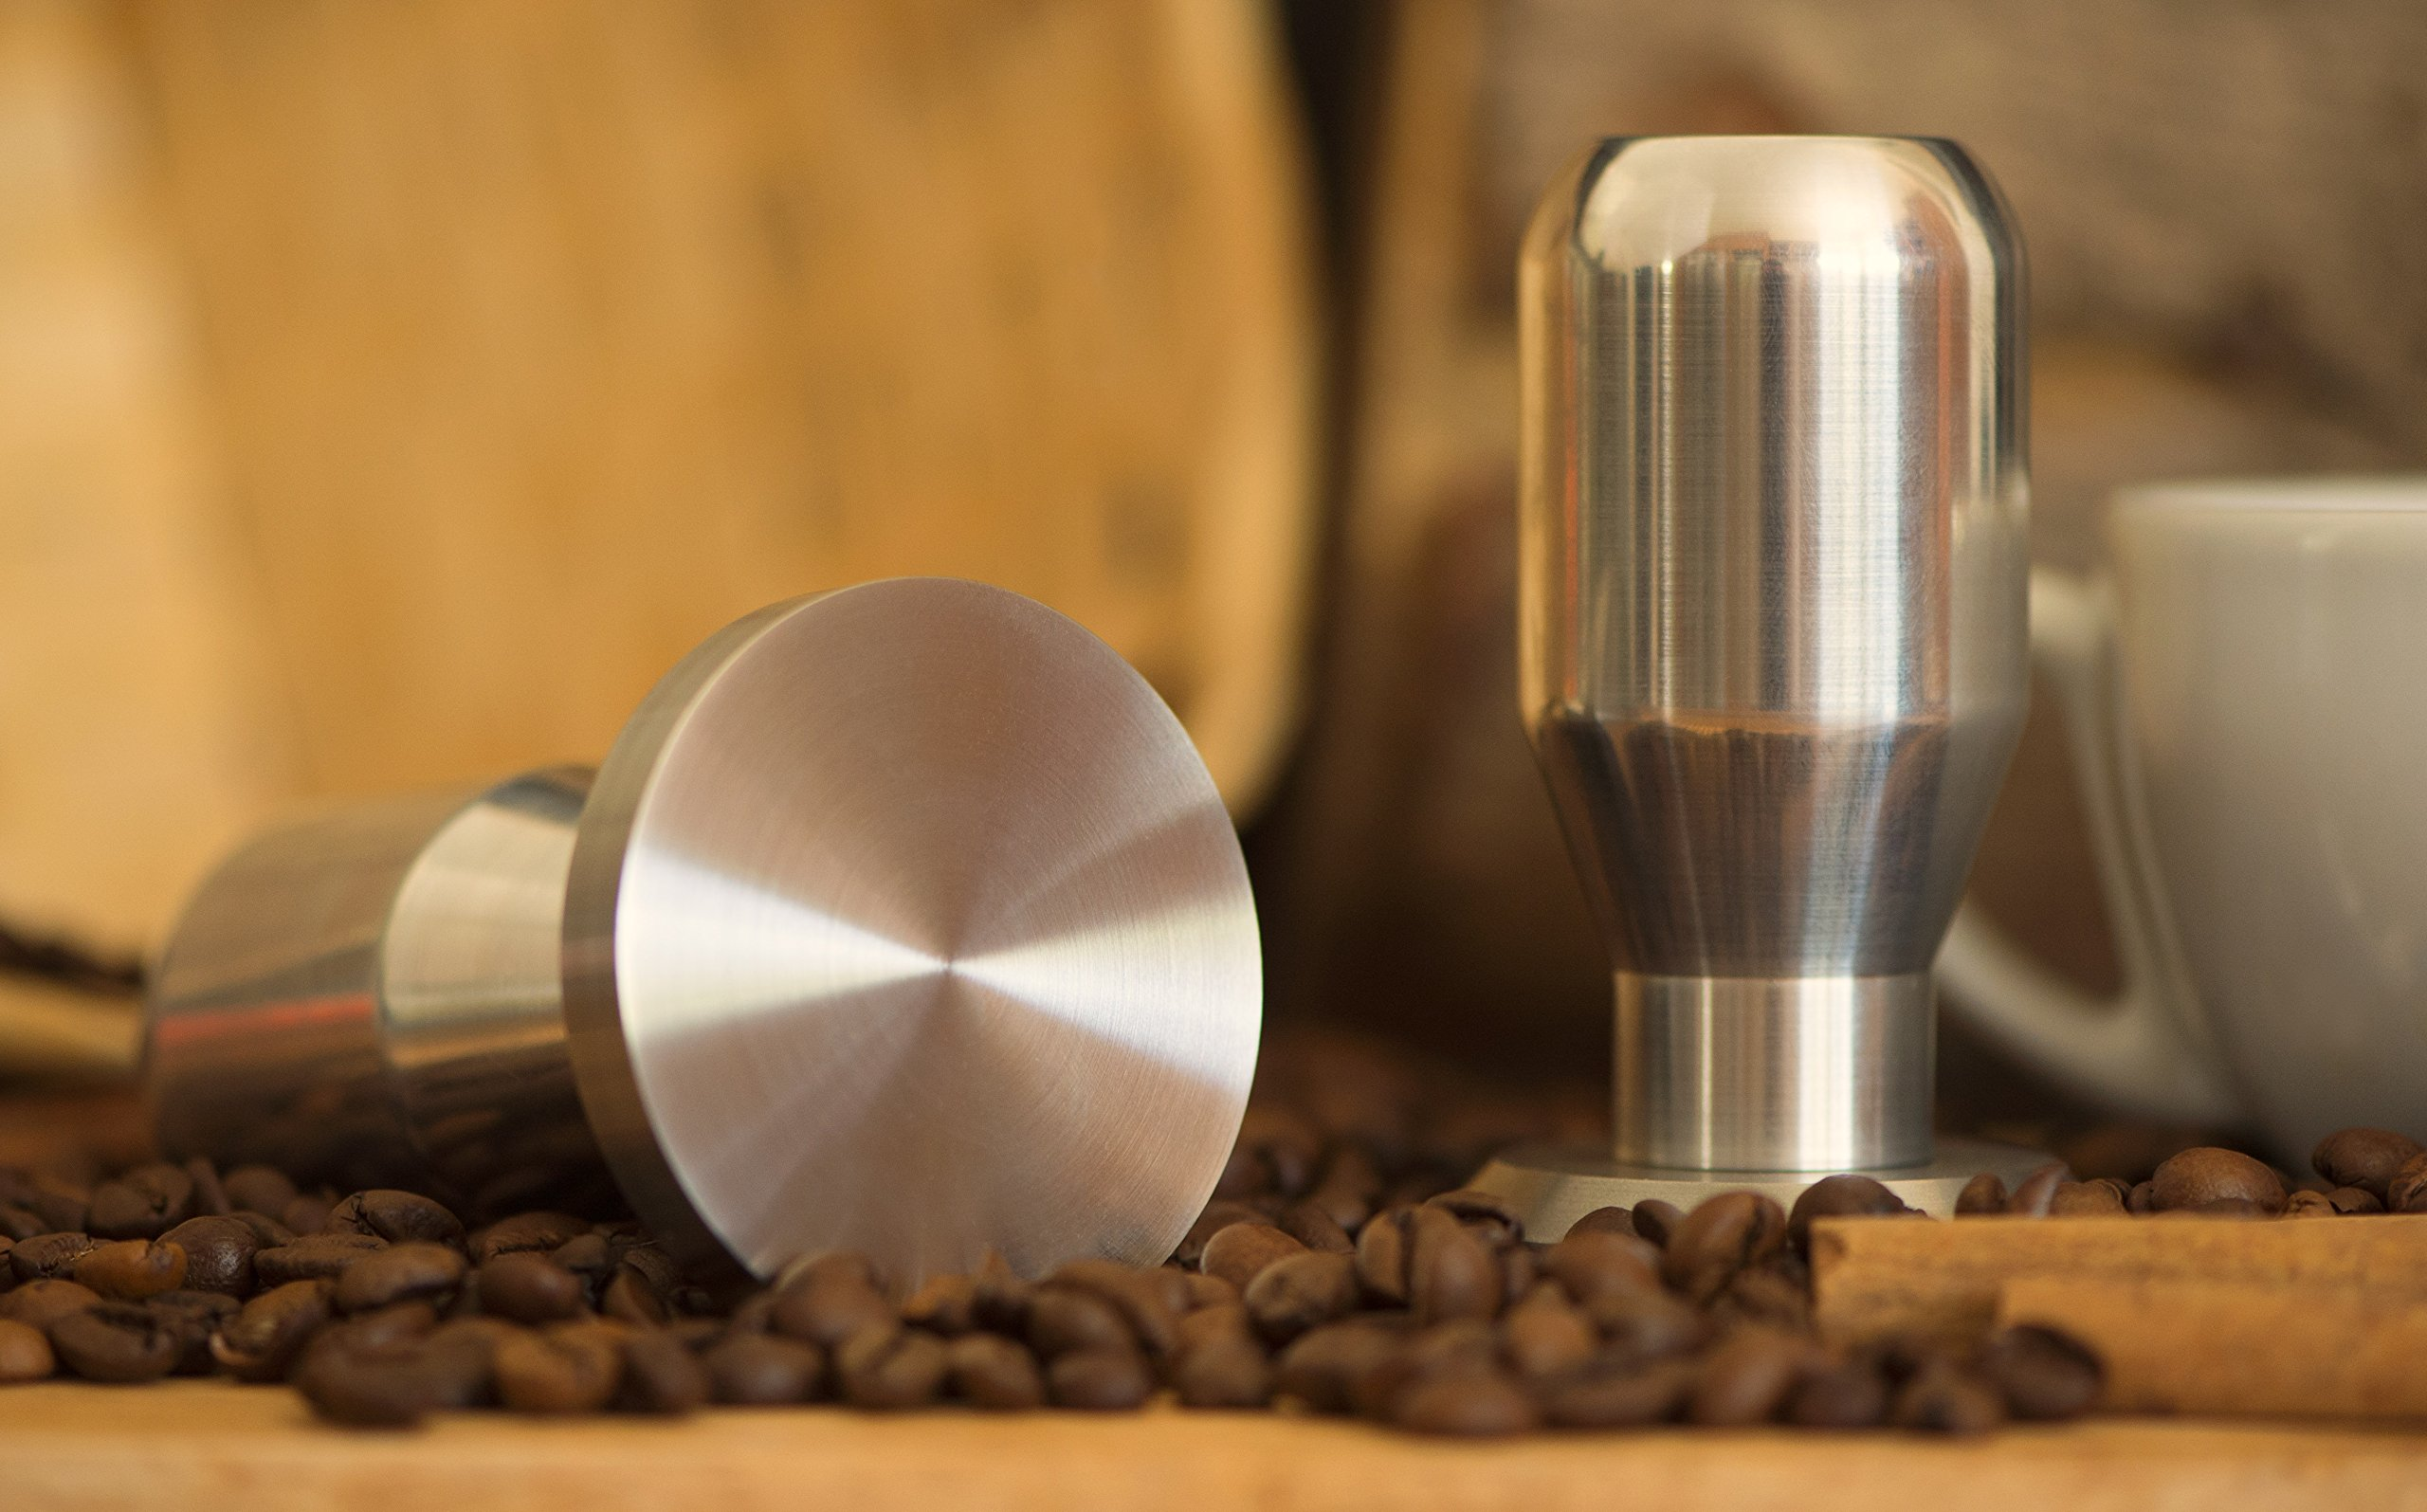 Modern Professional Coffee Espresso Tamper 100% Stainless Steel Base, Variety of Sizes. (49.6mm)